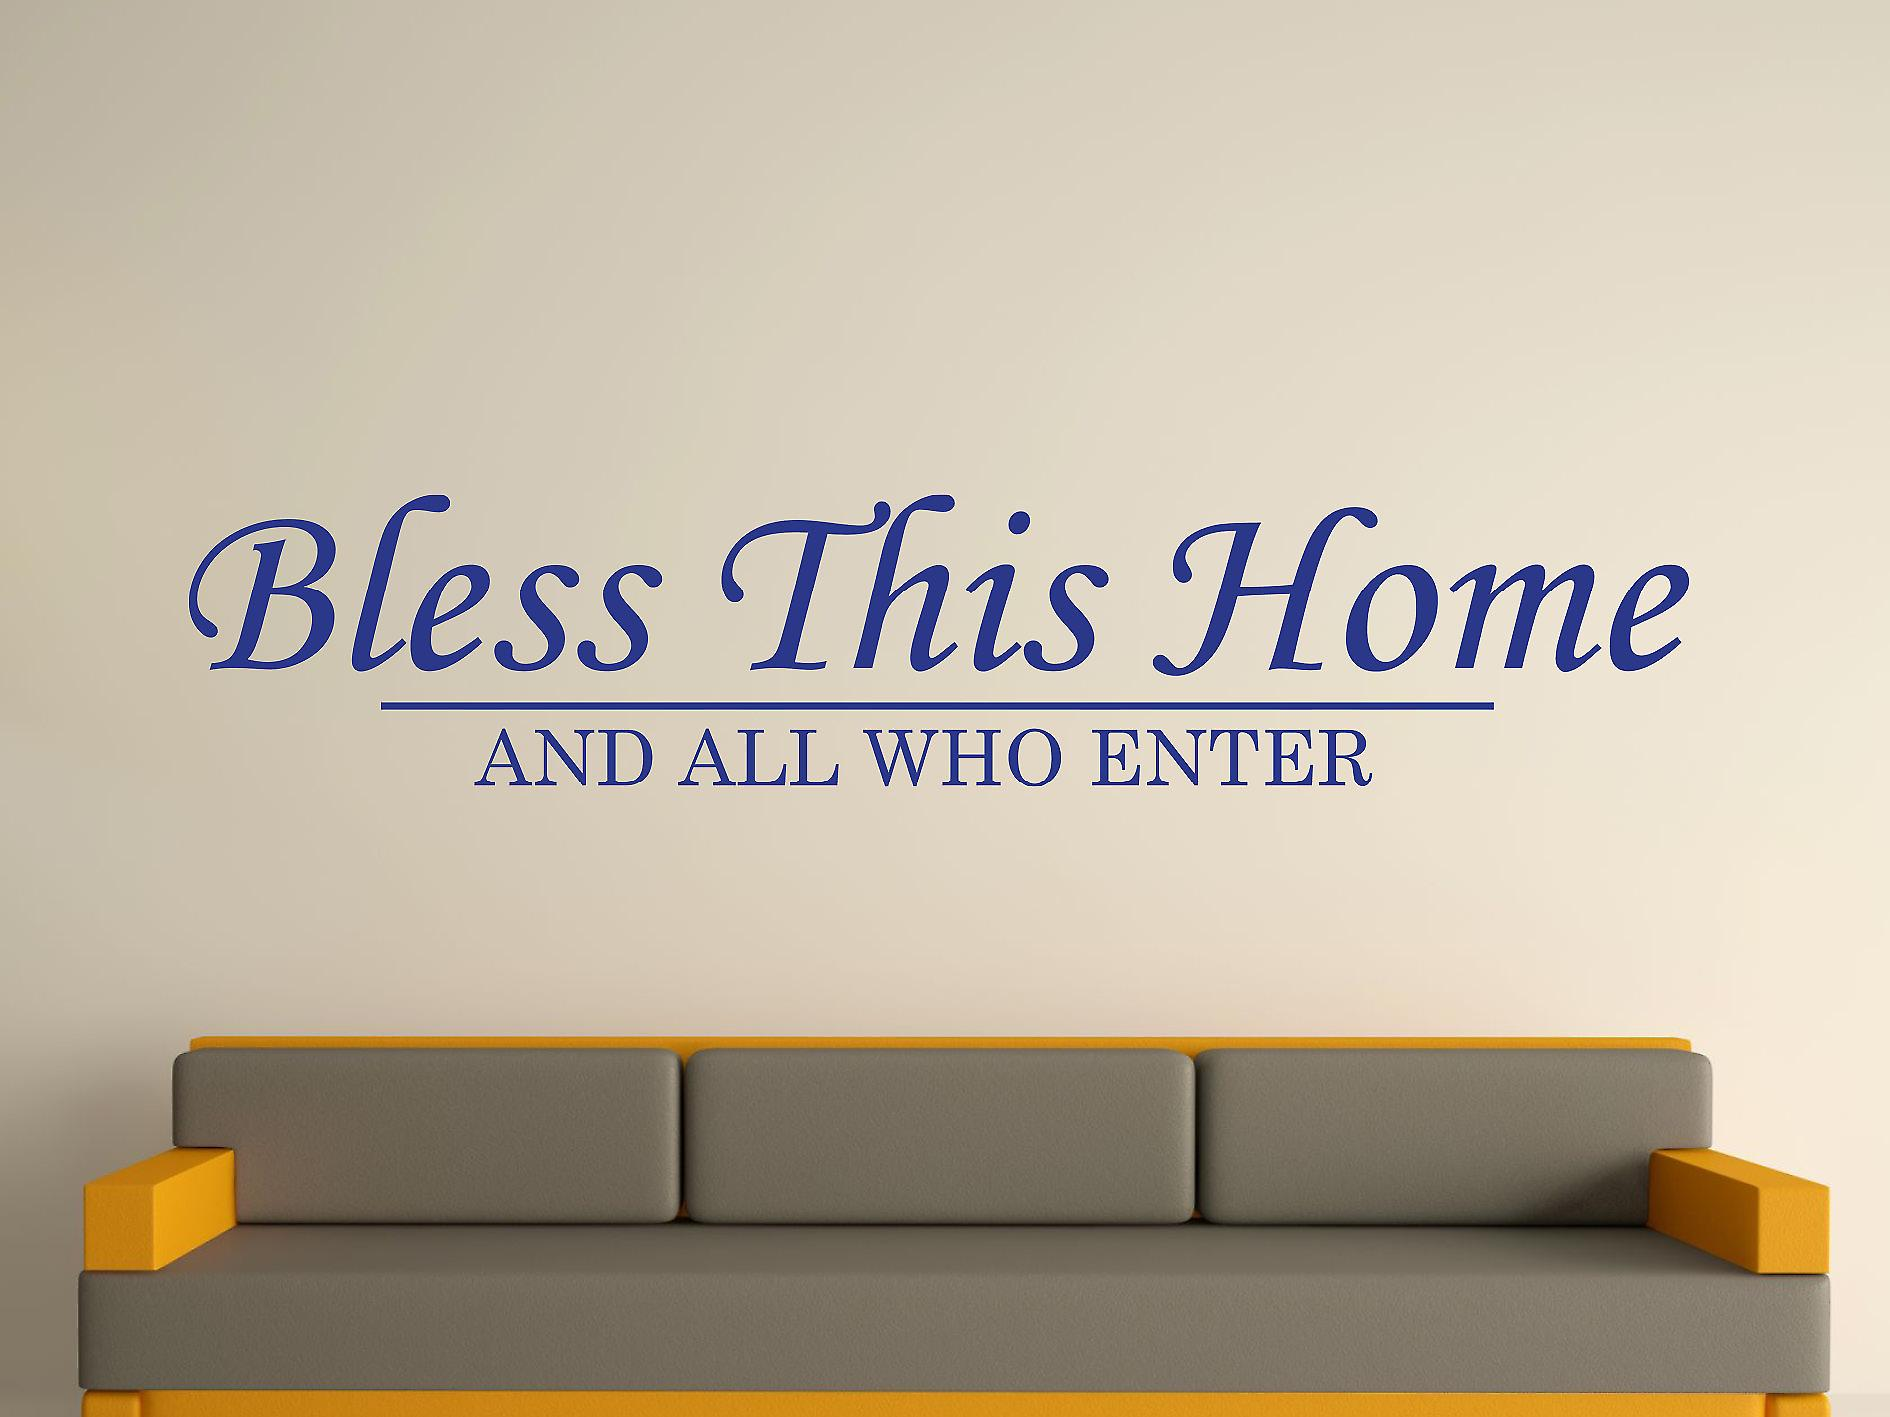 Bless This Home Wall Art Sticker - Dark Blue